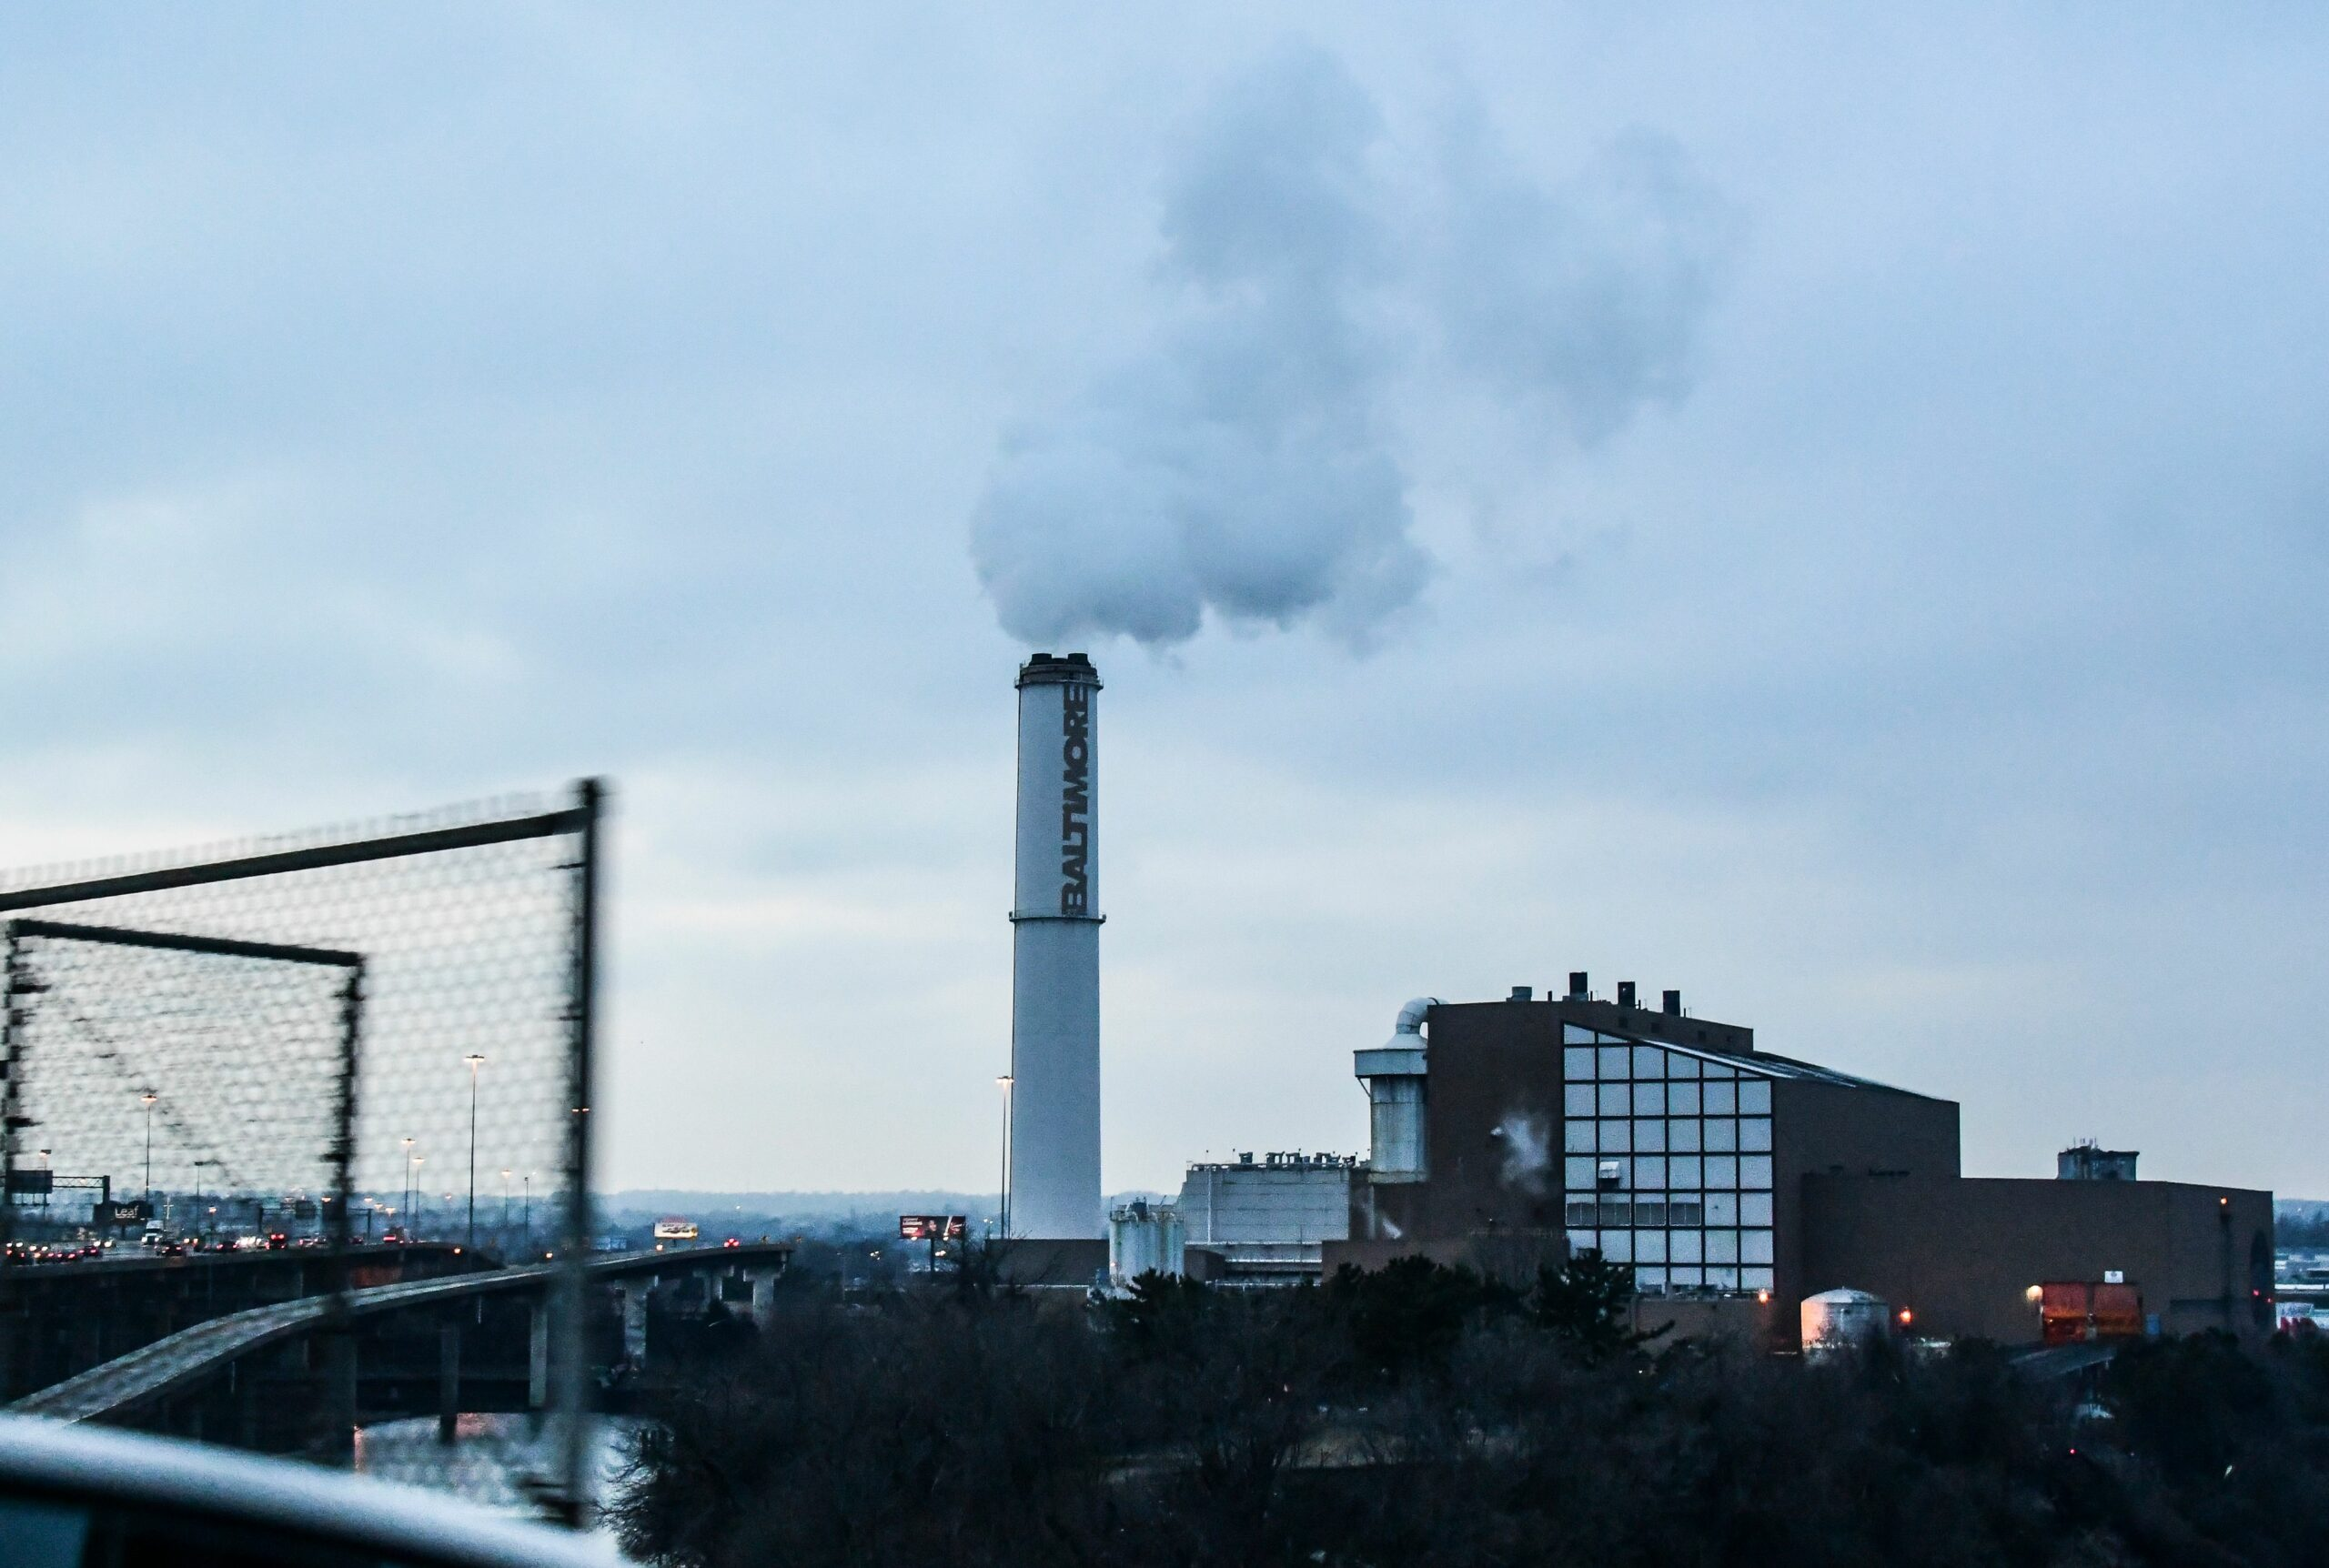 The smokestack of the Wheelabrator Incinerator is seen near Interstate 95 in Baltimore, Maryland, March 09, 2019. Credit: Eva Claire Hambach/AFP via Getty Images